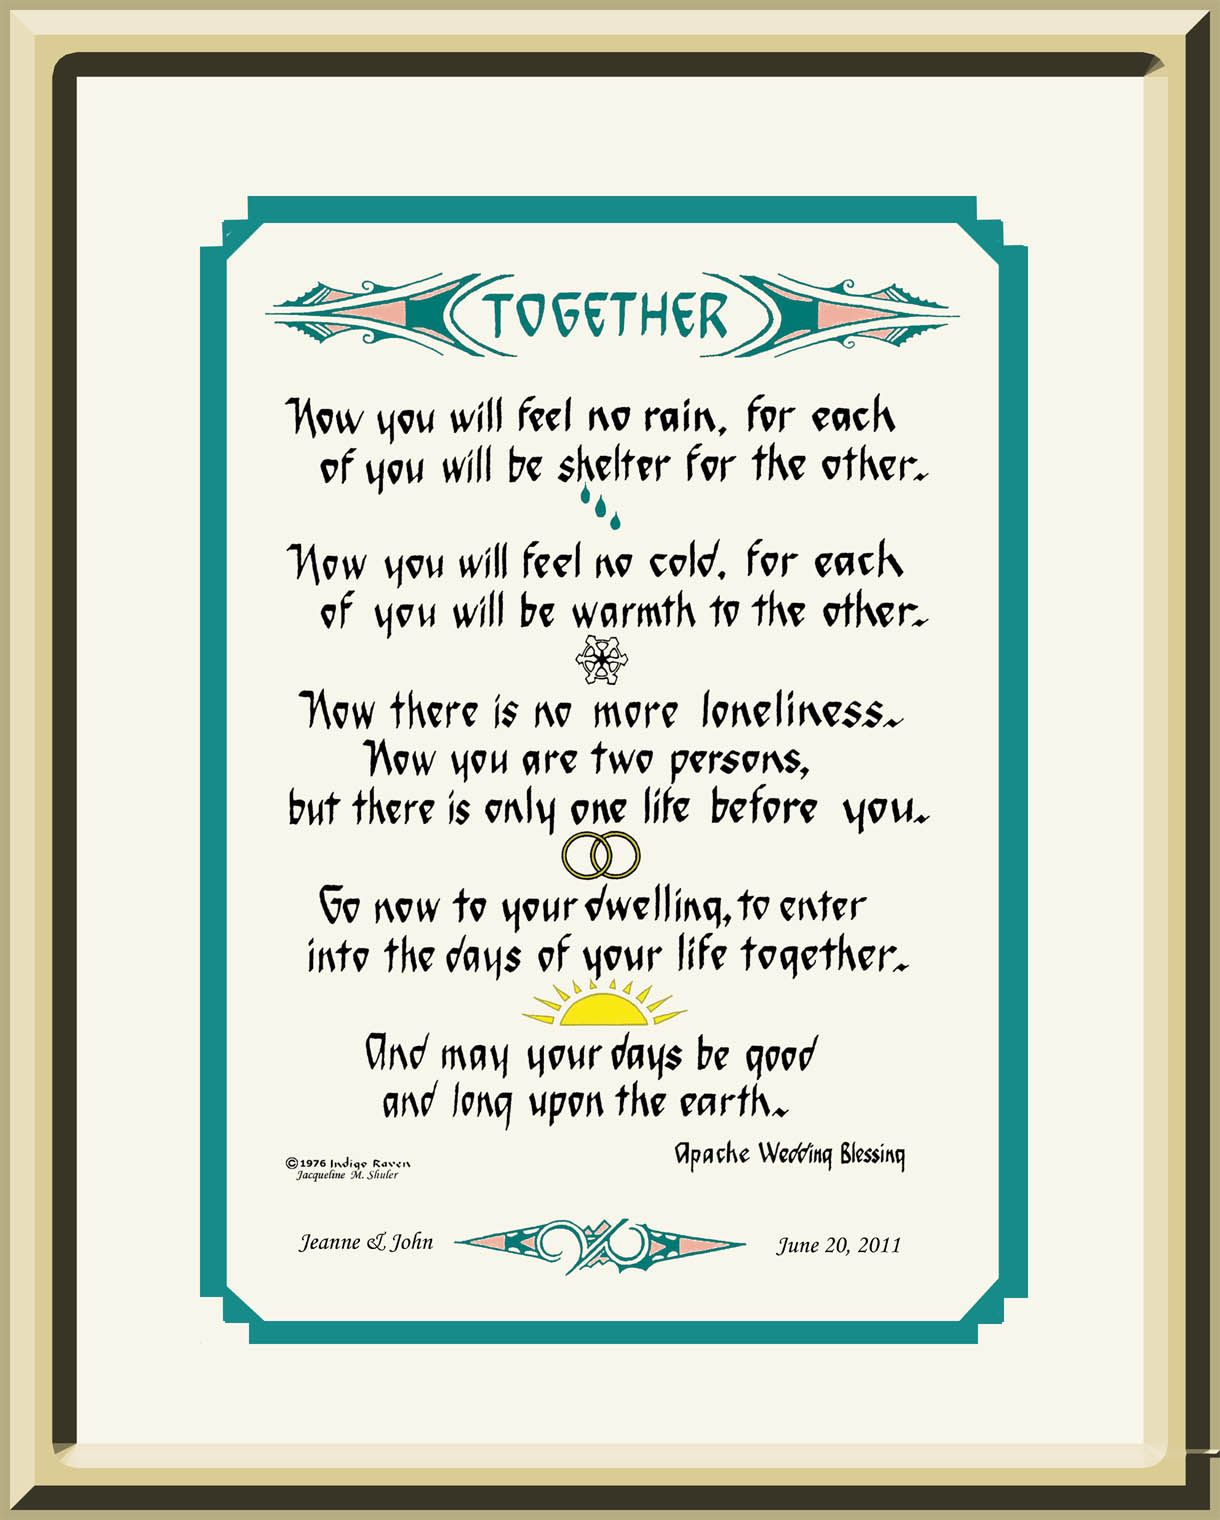 This is the classic apache wedding blessing which i have lettered